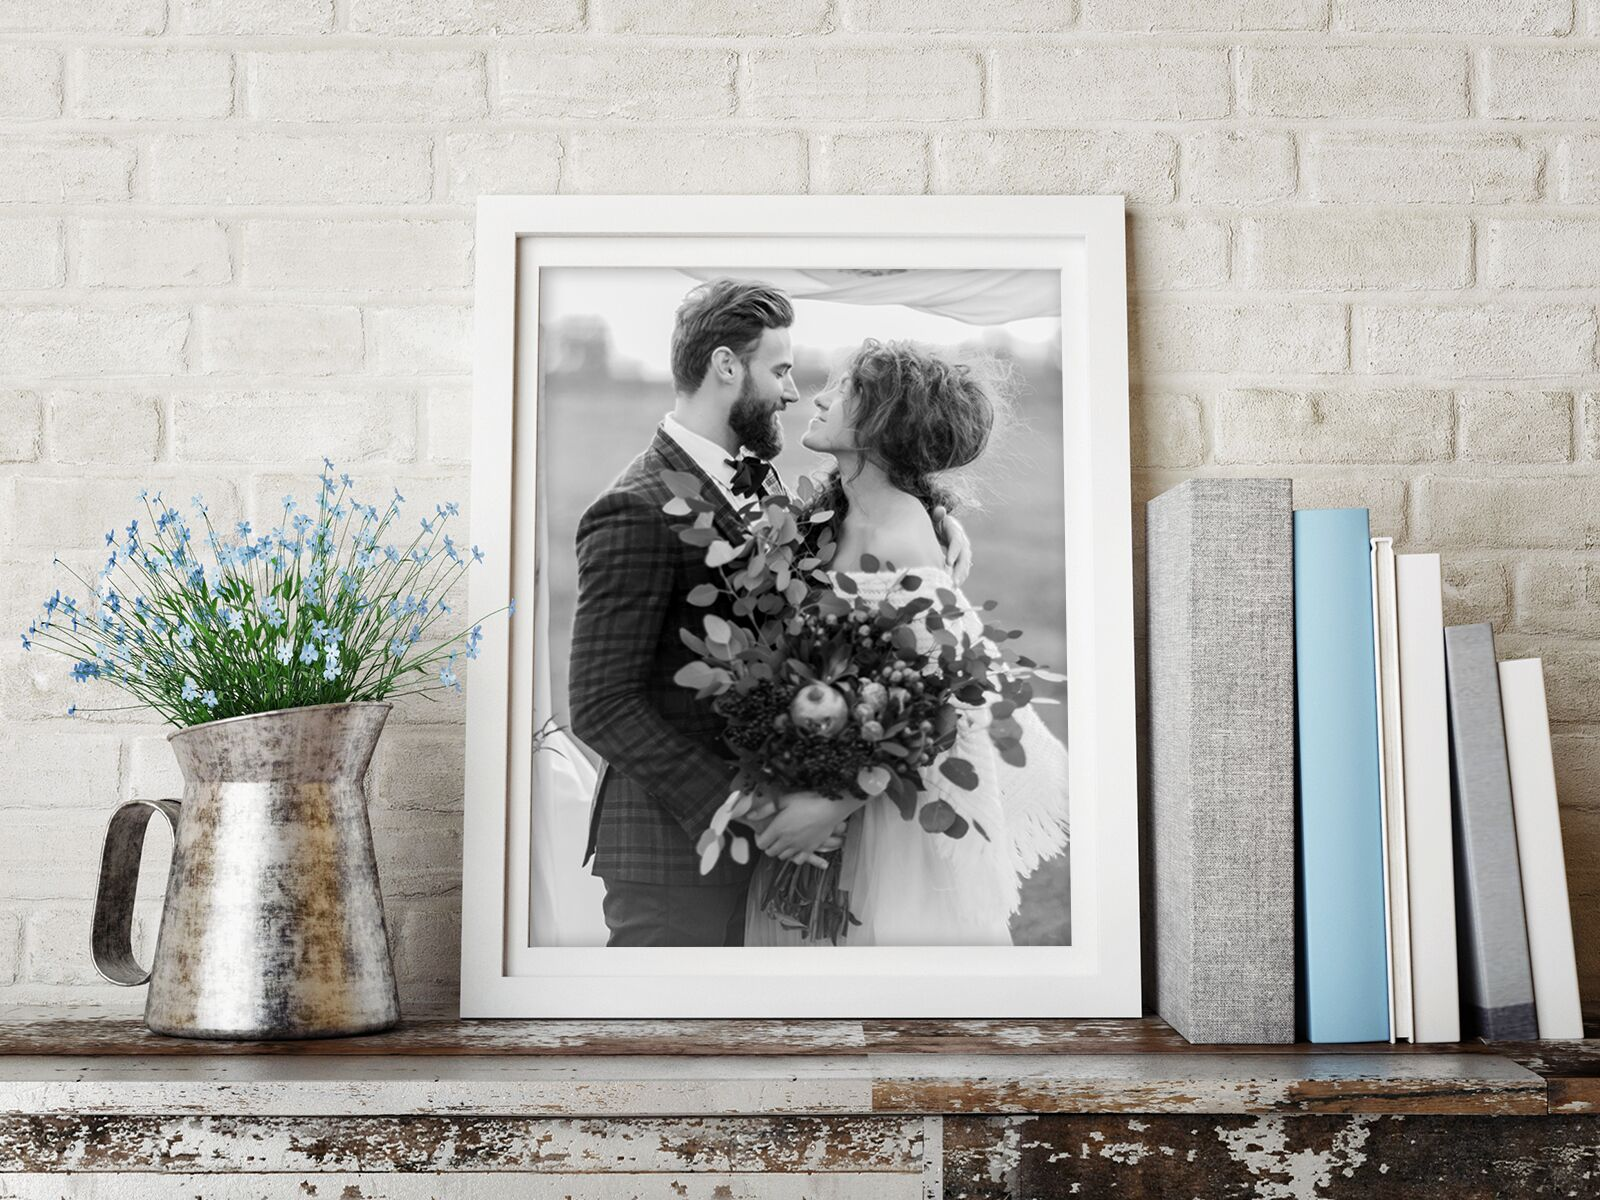 Wedding Gift Ideas For Mom: Thank-You Gift Ideas For Parents Of The Bride And Groom